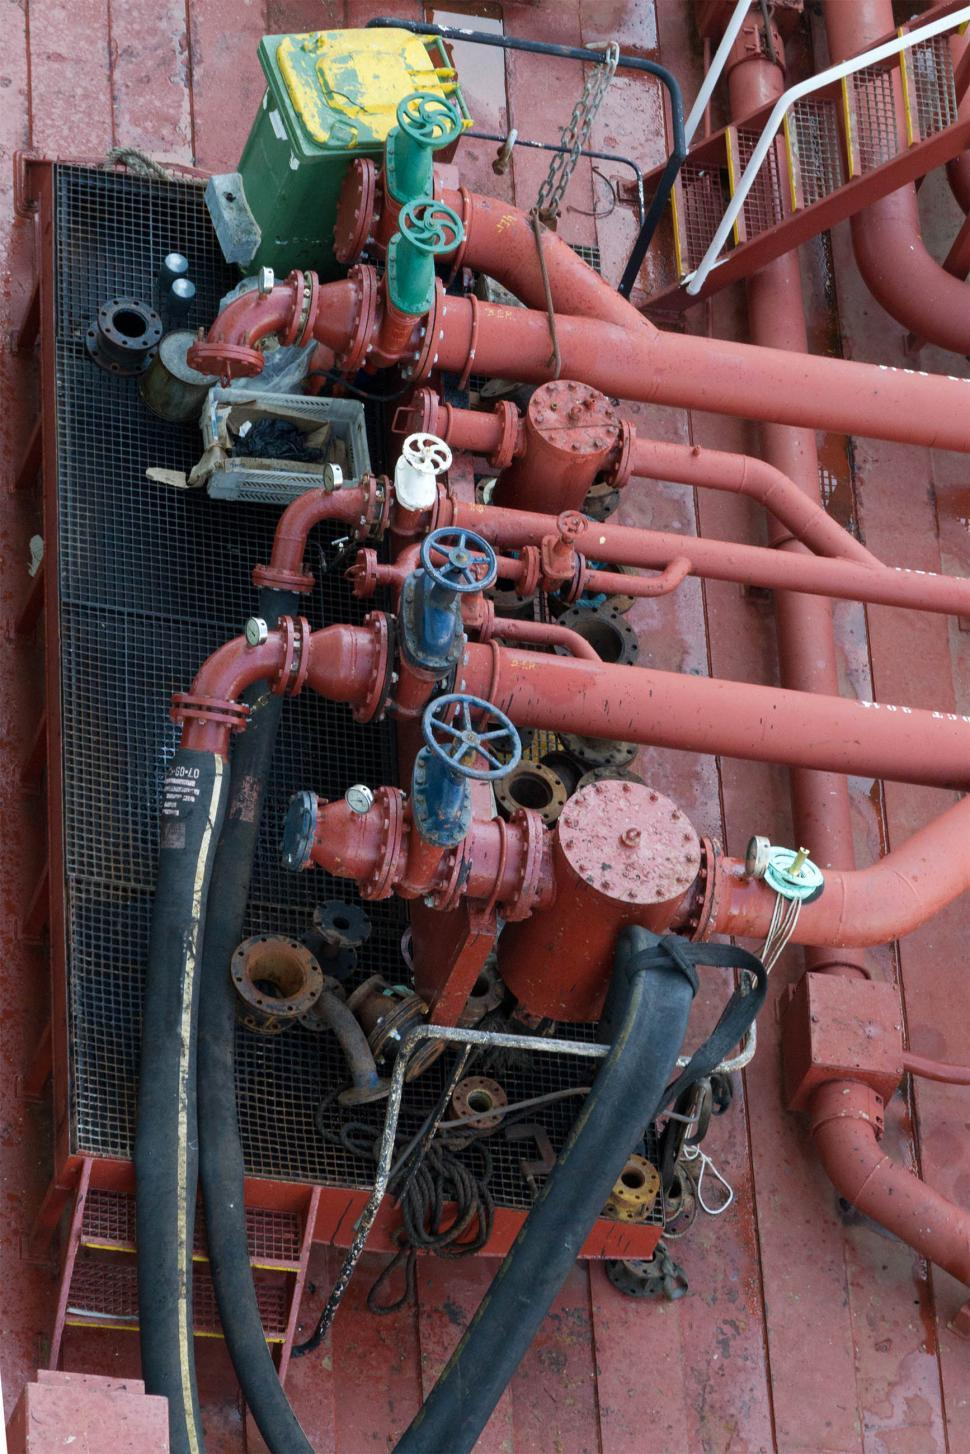 Download Free Stock Photo of Oil pipelines and Valves above Basin